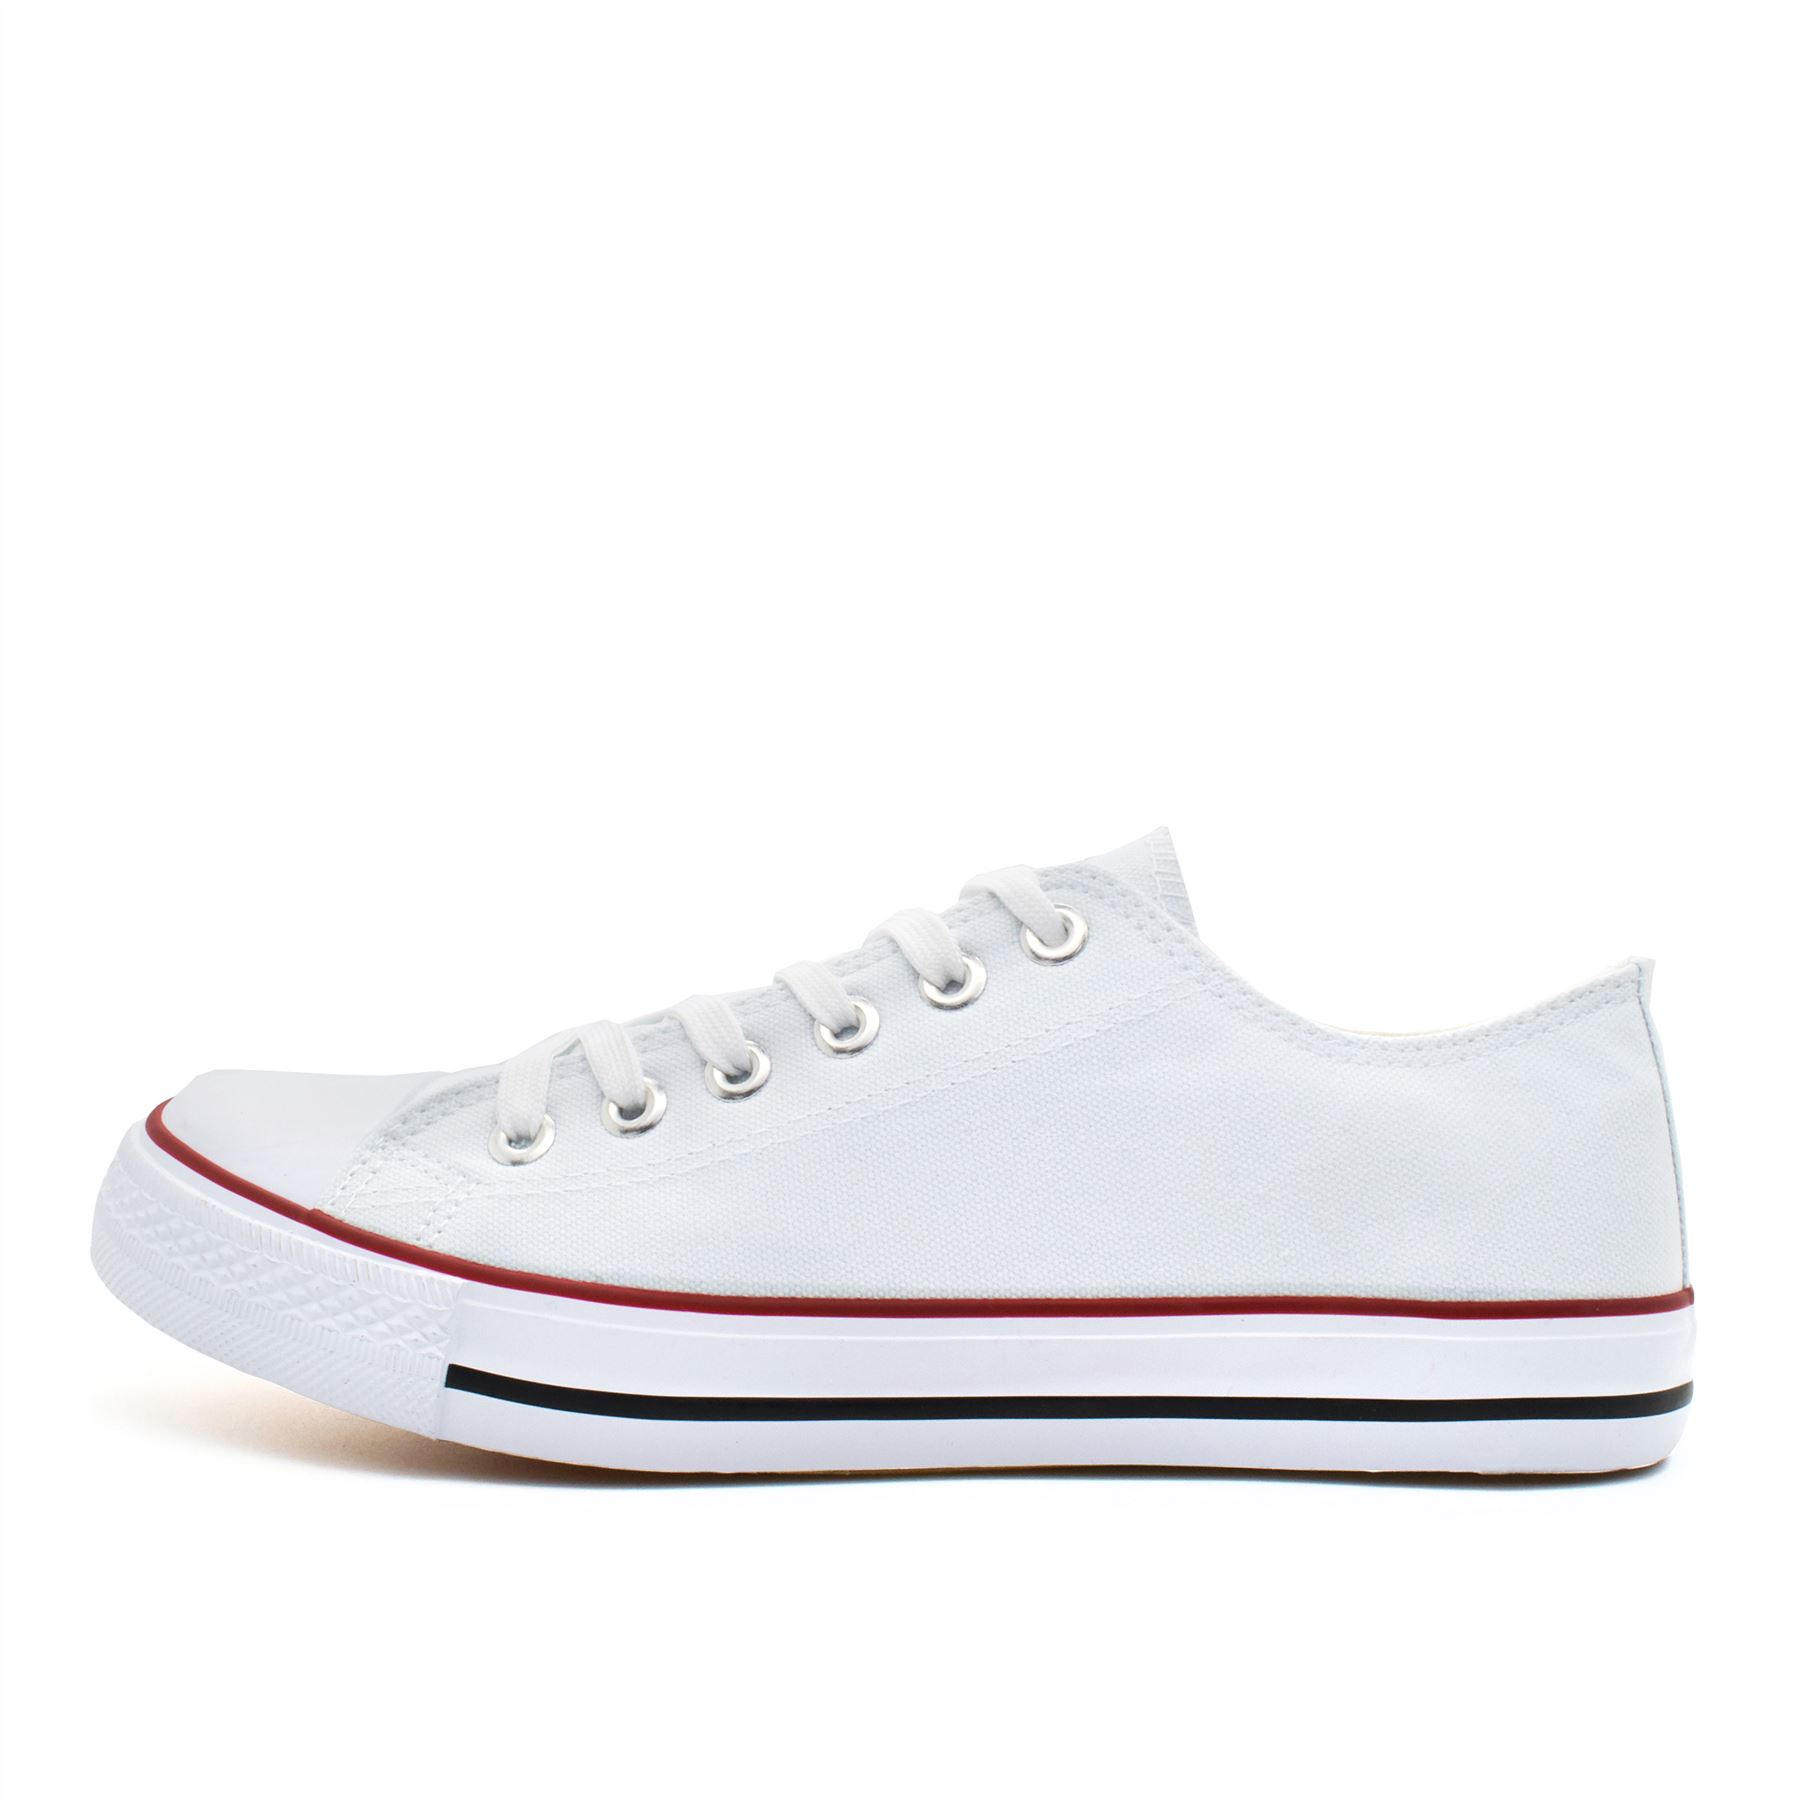 New Mens Flat Canvas Plimsolls Trainers Casual Lace Up Shoes Pumps Size 6-11 UK